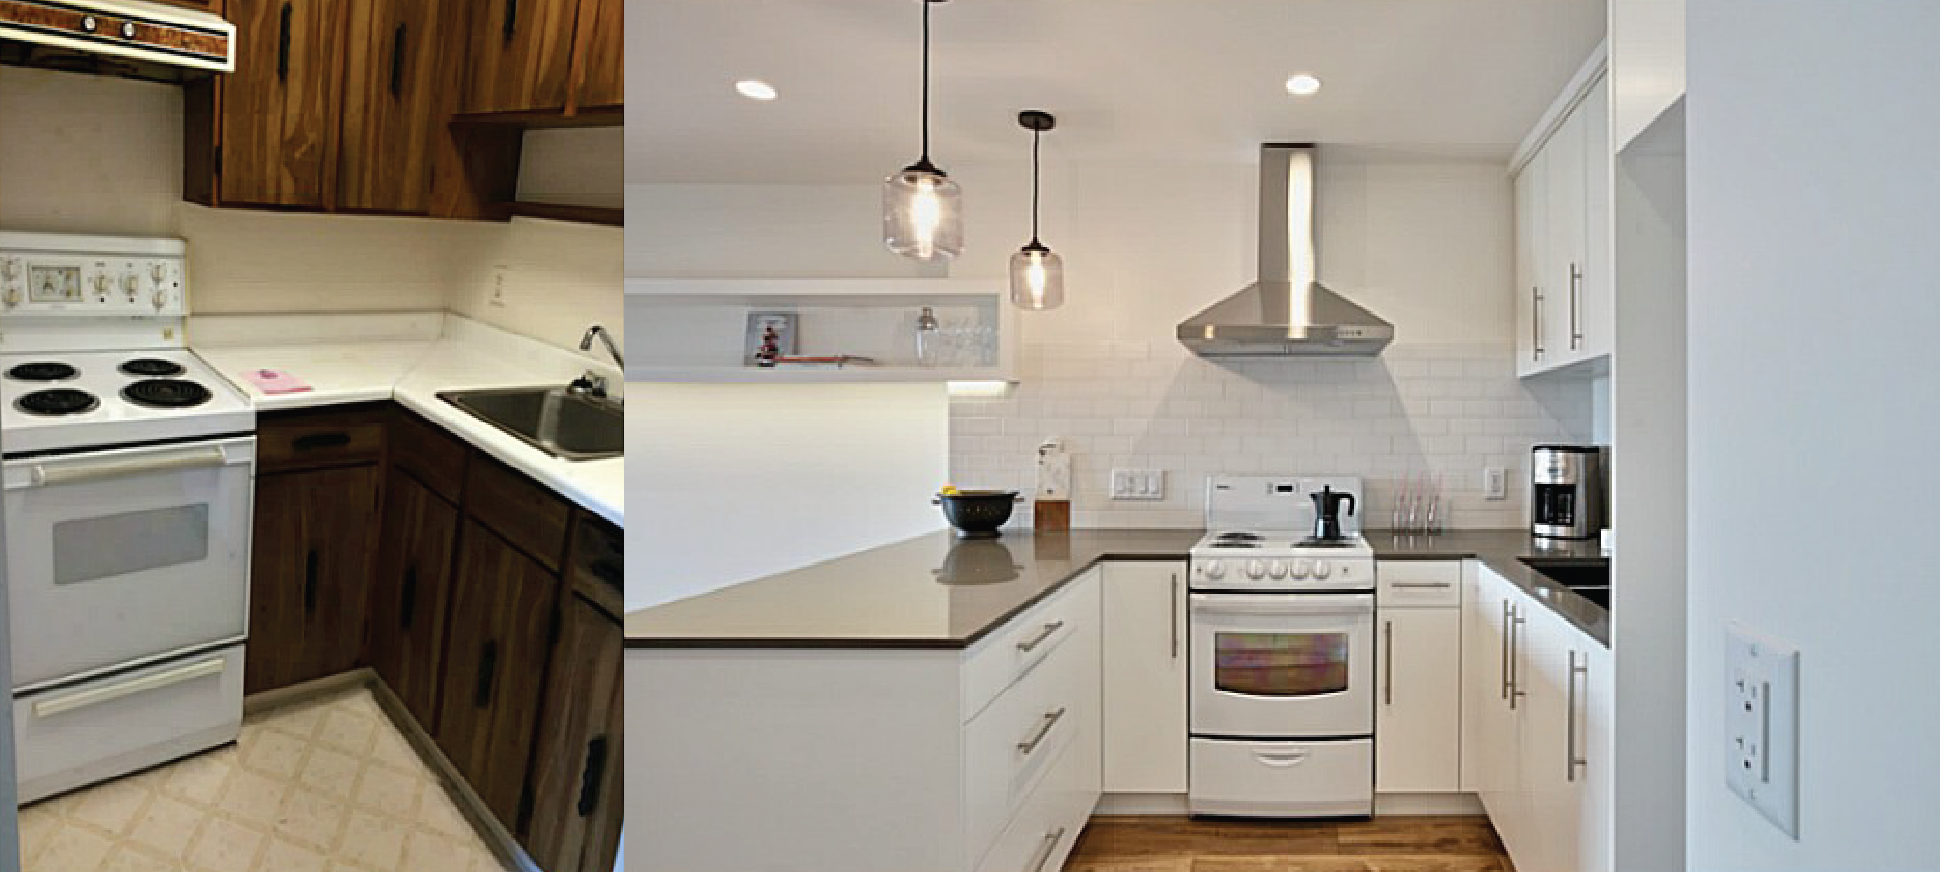 Condo Remodel Before And After  Small Kitchen Remodel Before And Entrancing Kitchen Design Hawaii Design Decoration